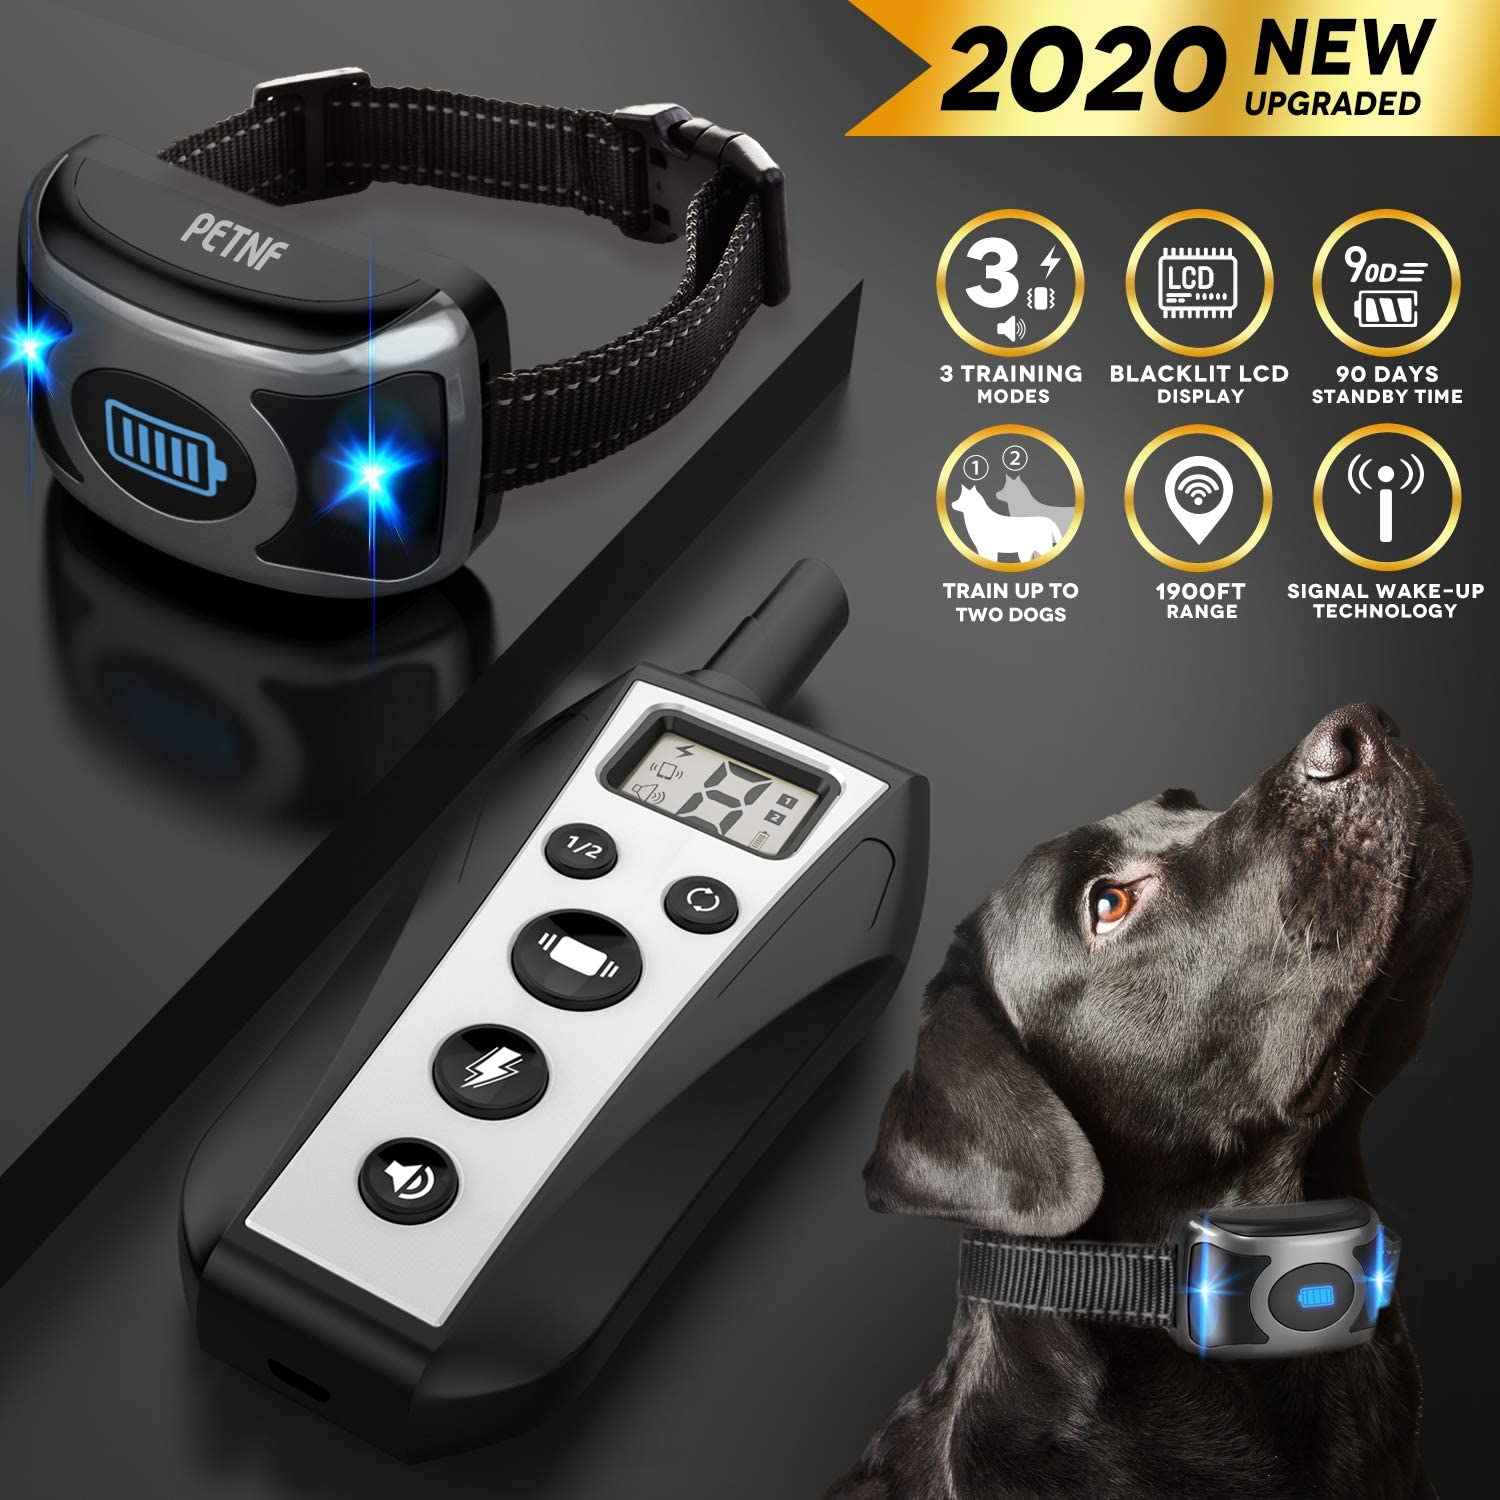 2020 Upgraded Shock Collar for Dogs,Dog Training Collar,Shock Collar with Remote and Signal Wake-up Technology,3 Training Modes,Beep,Vibration,Shock,Rechargeable Waterproof for Small,Medium,Large dog